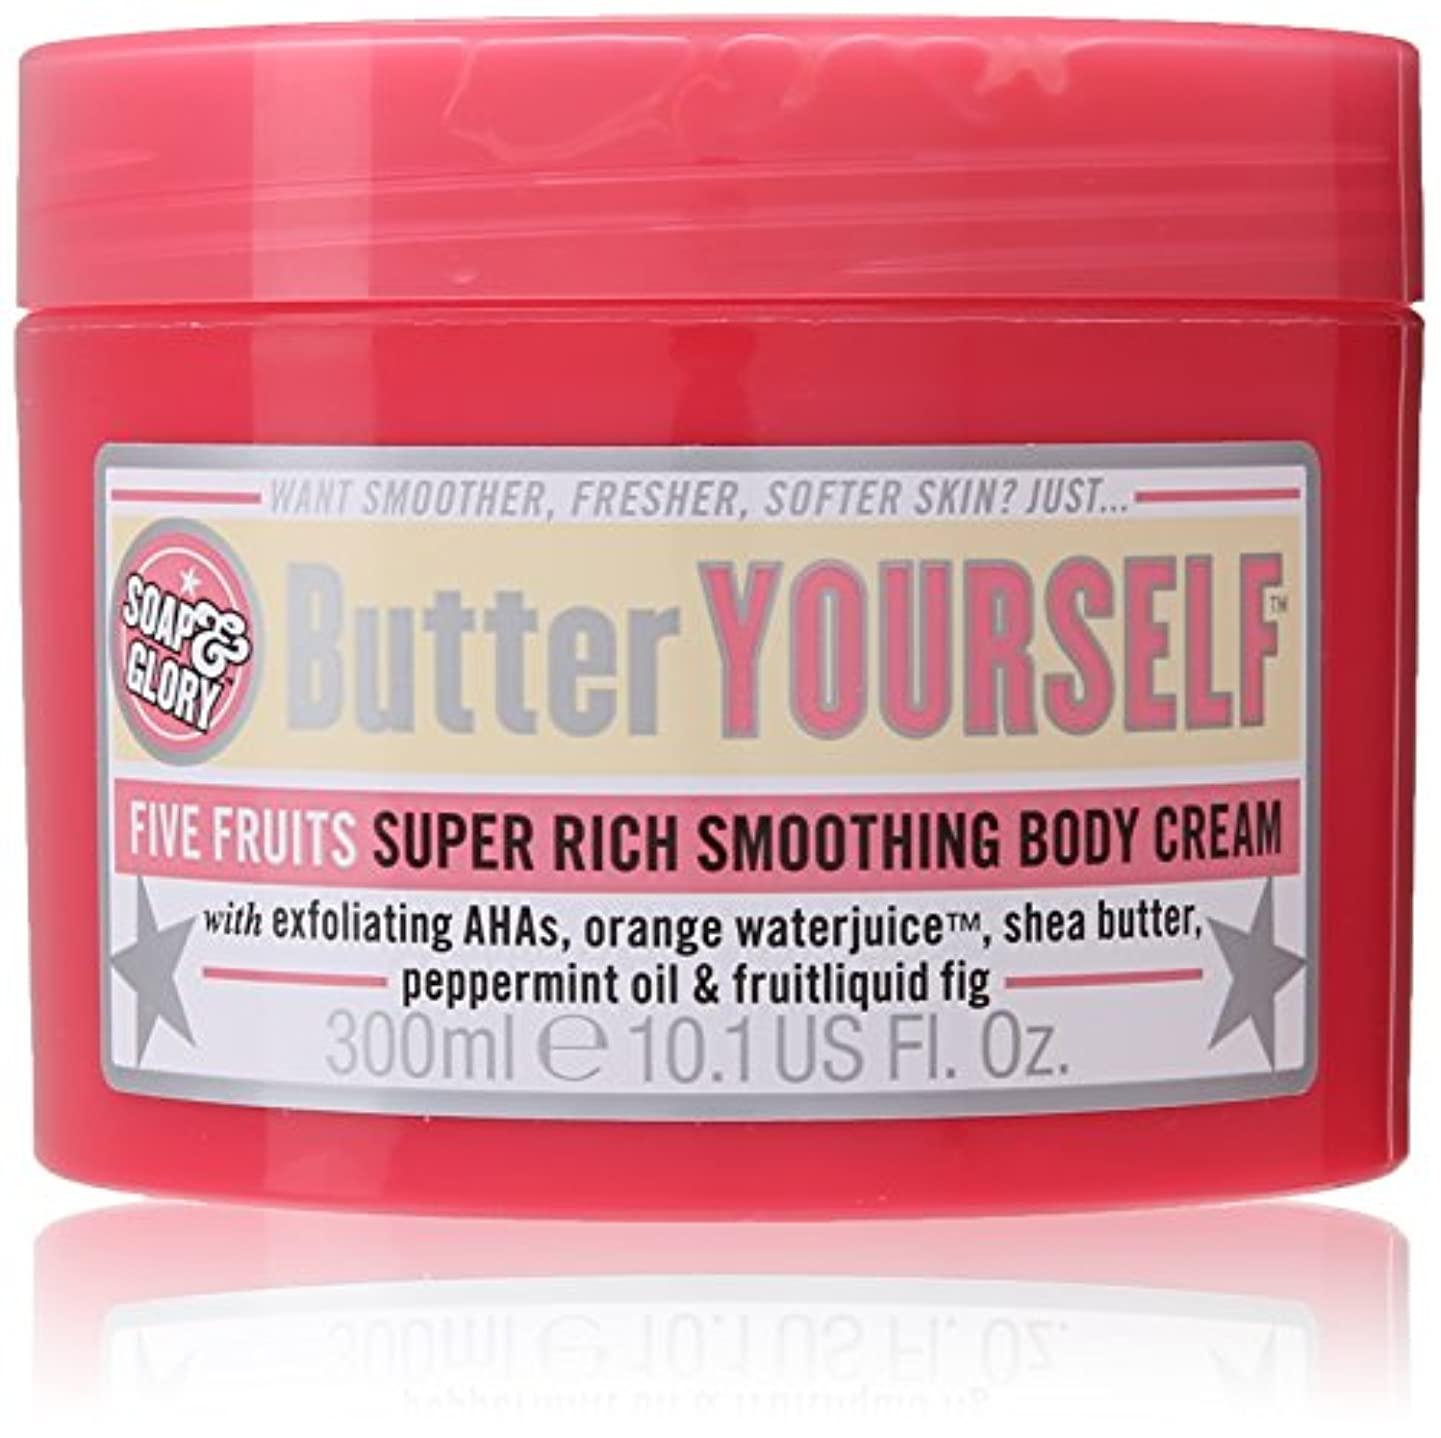 アンビエント見つける構成員Soap And Glory Butter Yourself Five Fruits Super Rich Smoothing Body Cream 300ml